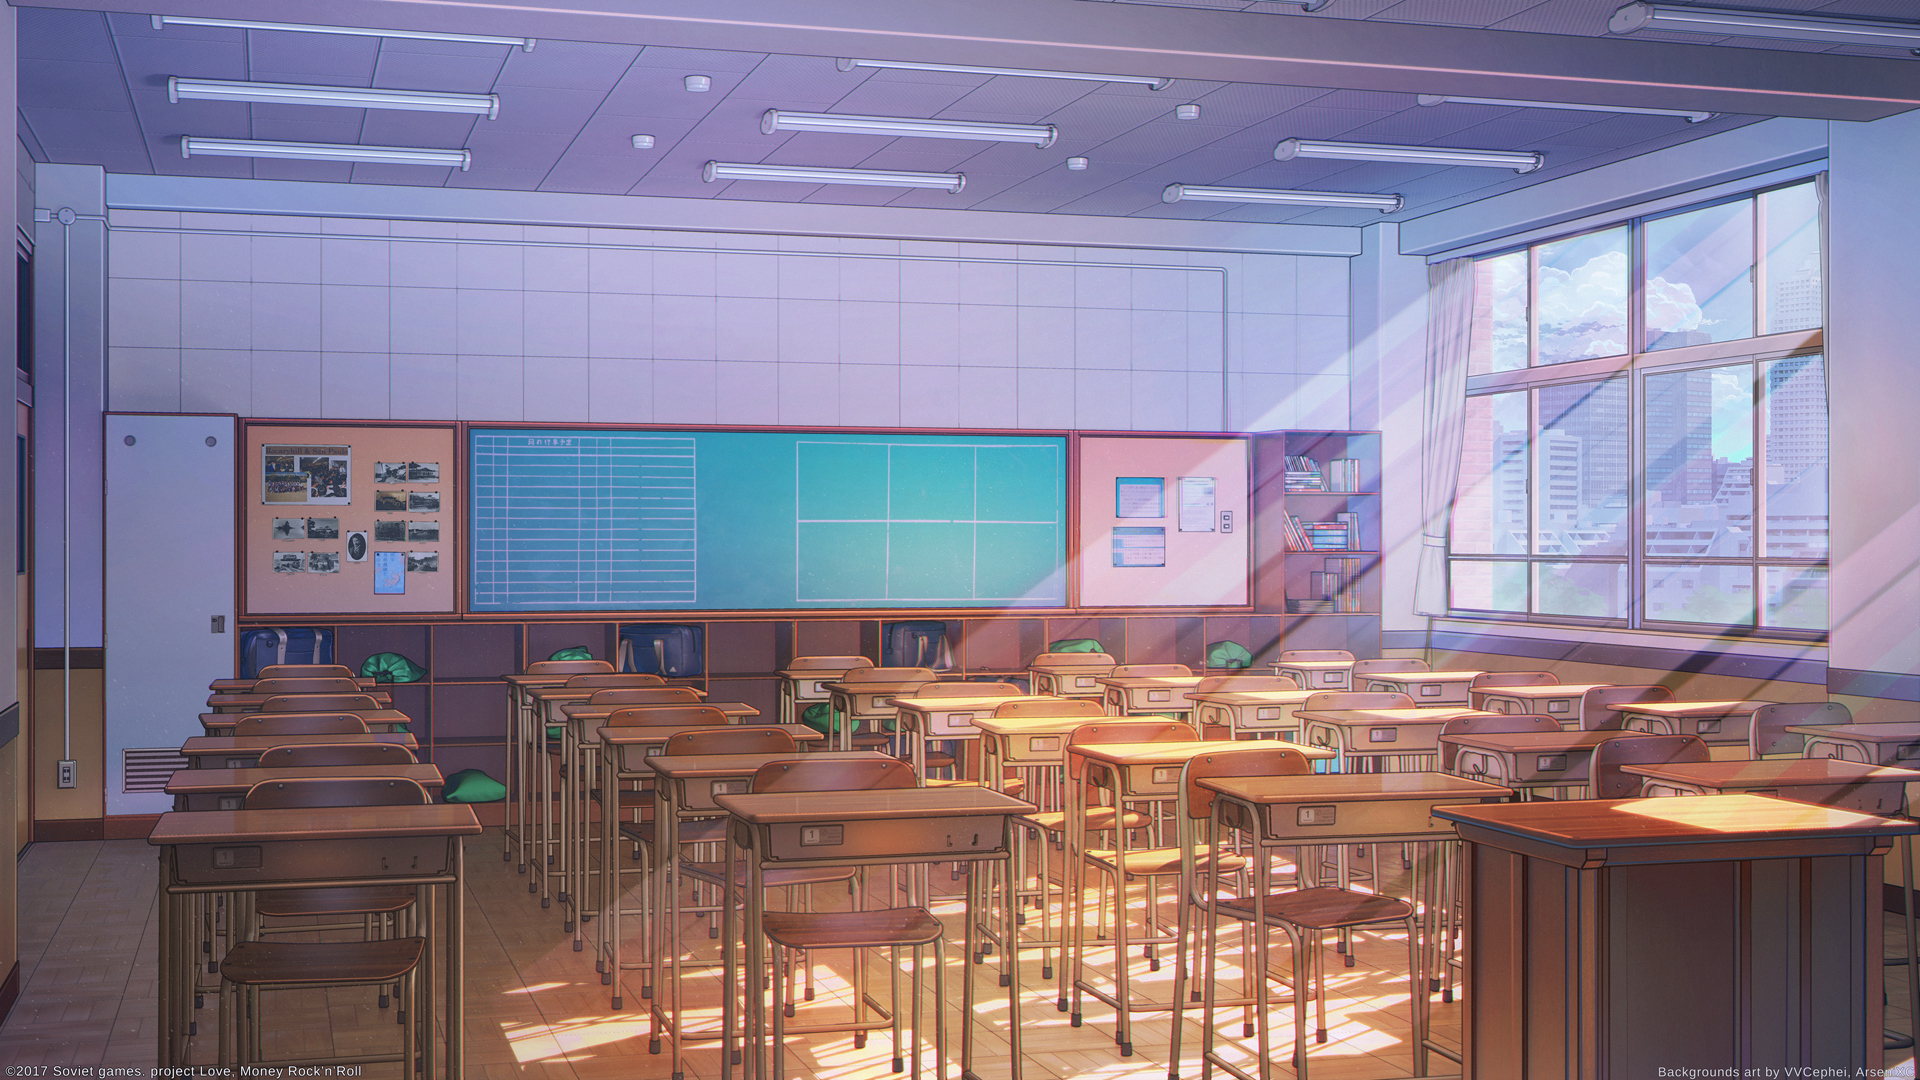 Classroom Design Tumblr ~ Class by arsenixc on deviantart